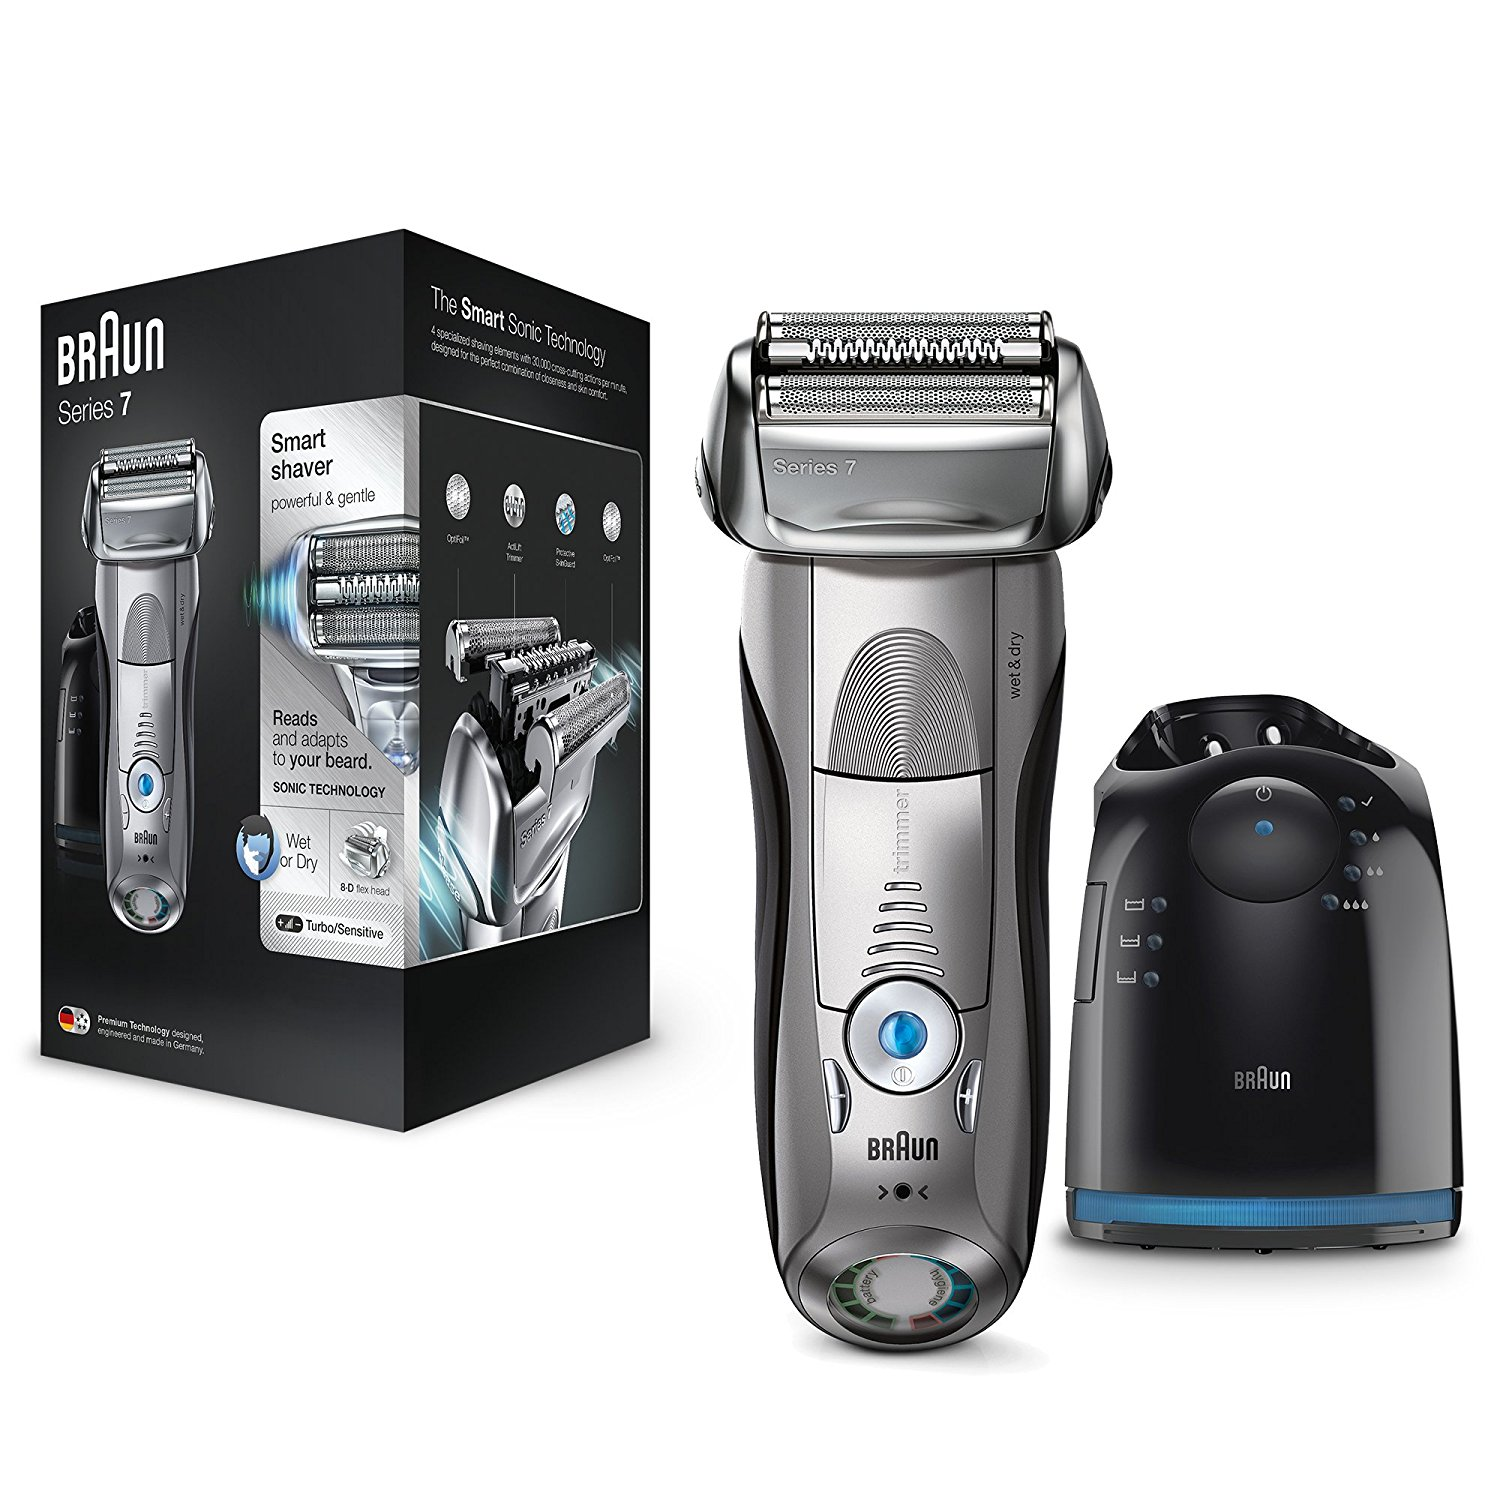 Braun Series 7 7898cc Men's Electric Foil Shaver|Wet/Dry + Clean|Charge Station|Silver|